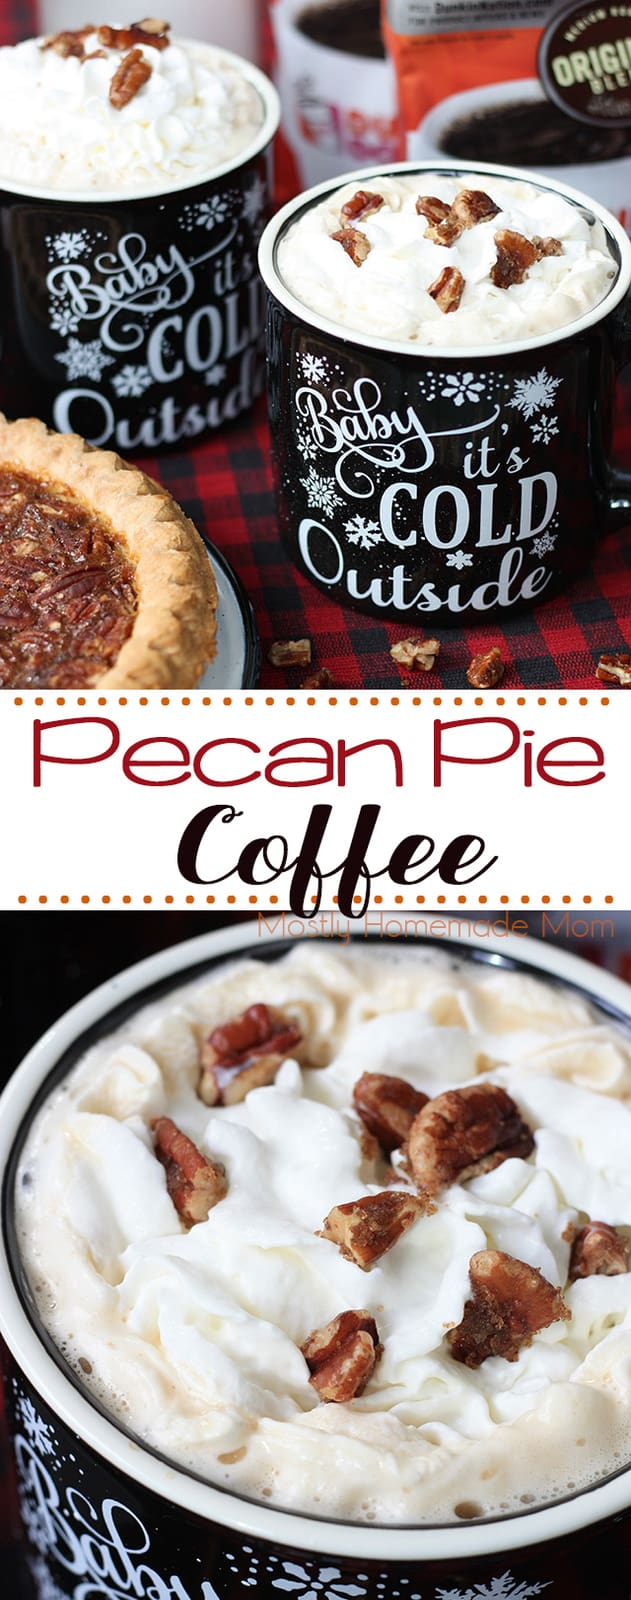 Pecan Pie Coffee - SO wonderful during the holidays! Brewed coffee with maple extract, hazelnut creamer, whipped cream, and candied pecans! #coffee #pecanpie #Thanksgiving #Christmas #drinks #recipe